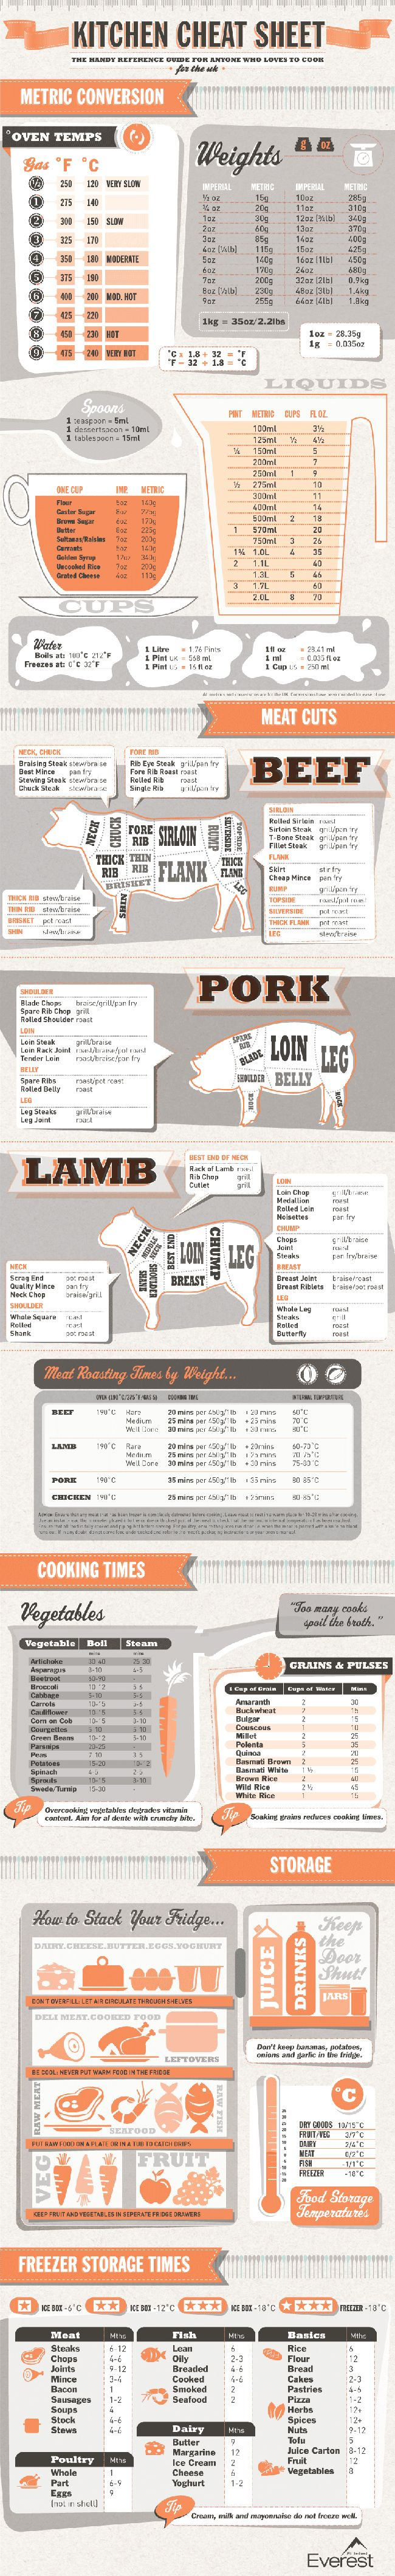 Excellent kitchen cheat sheet. Print it out and keep it on the kitchen counter for future reference. Very handy!